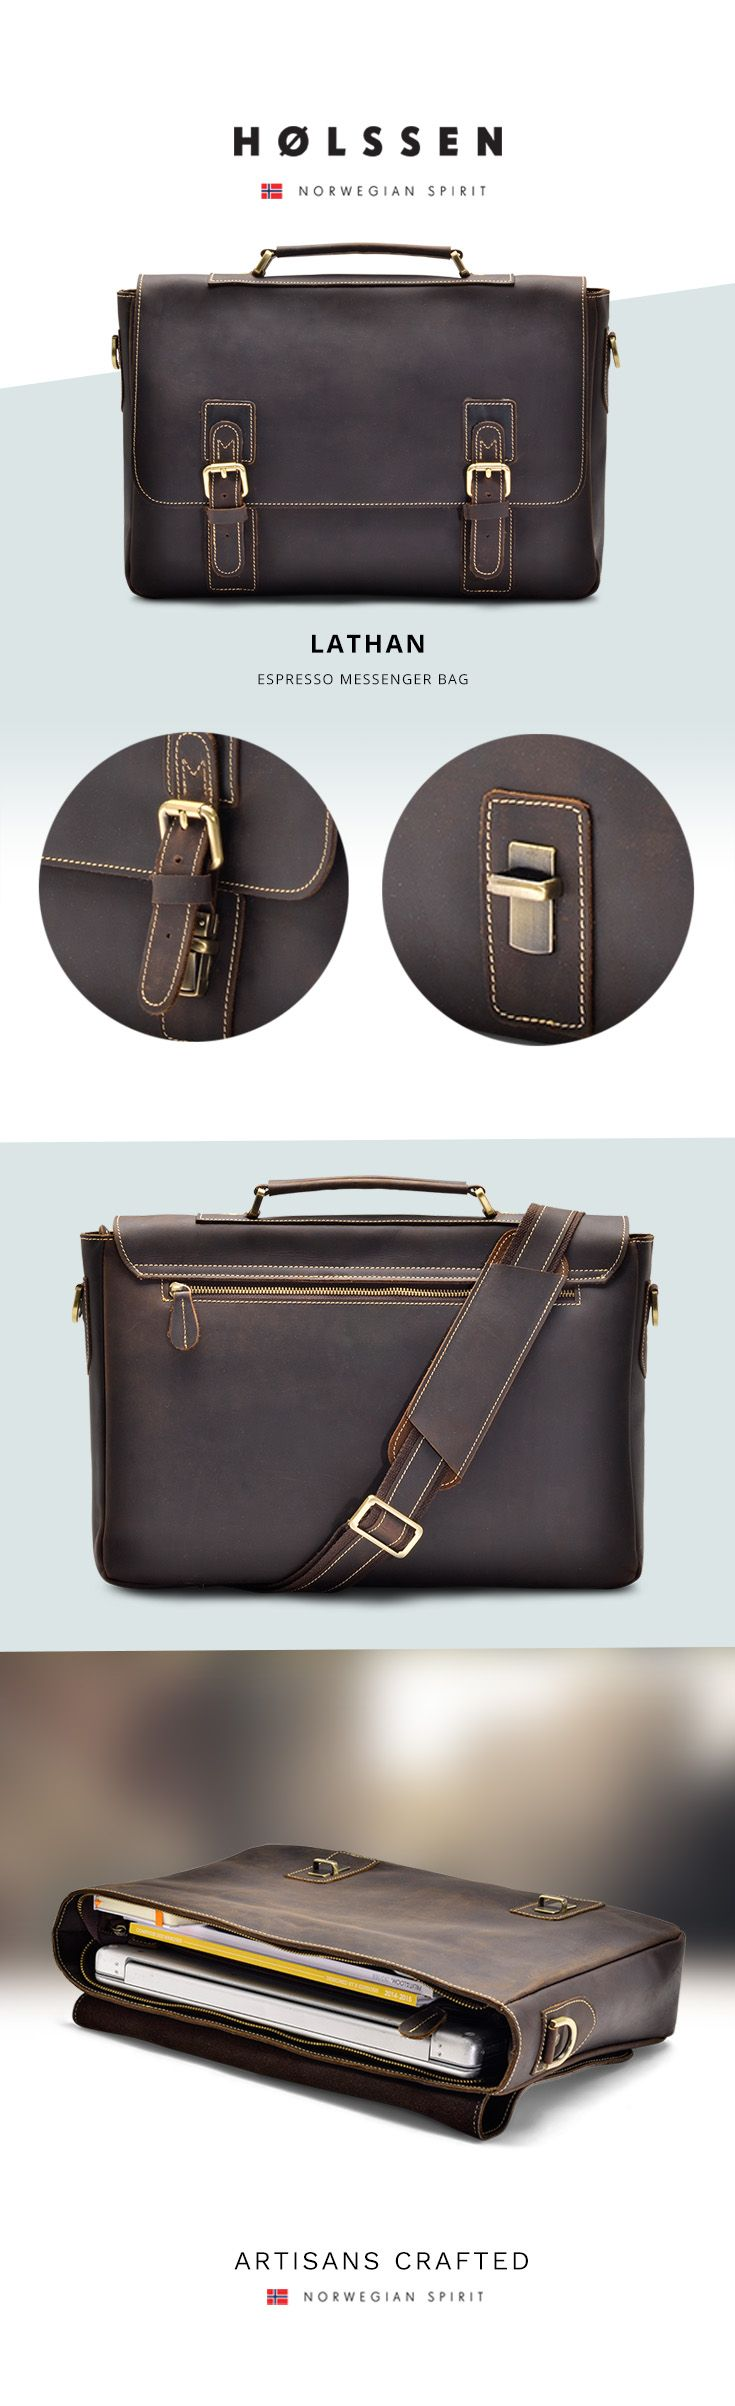 "Leather briefcase messenger bag perfect for work, daily use, or school. Has a laptop compartment and fits a 15"" laptop."